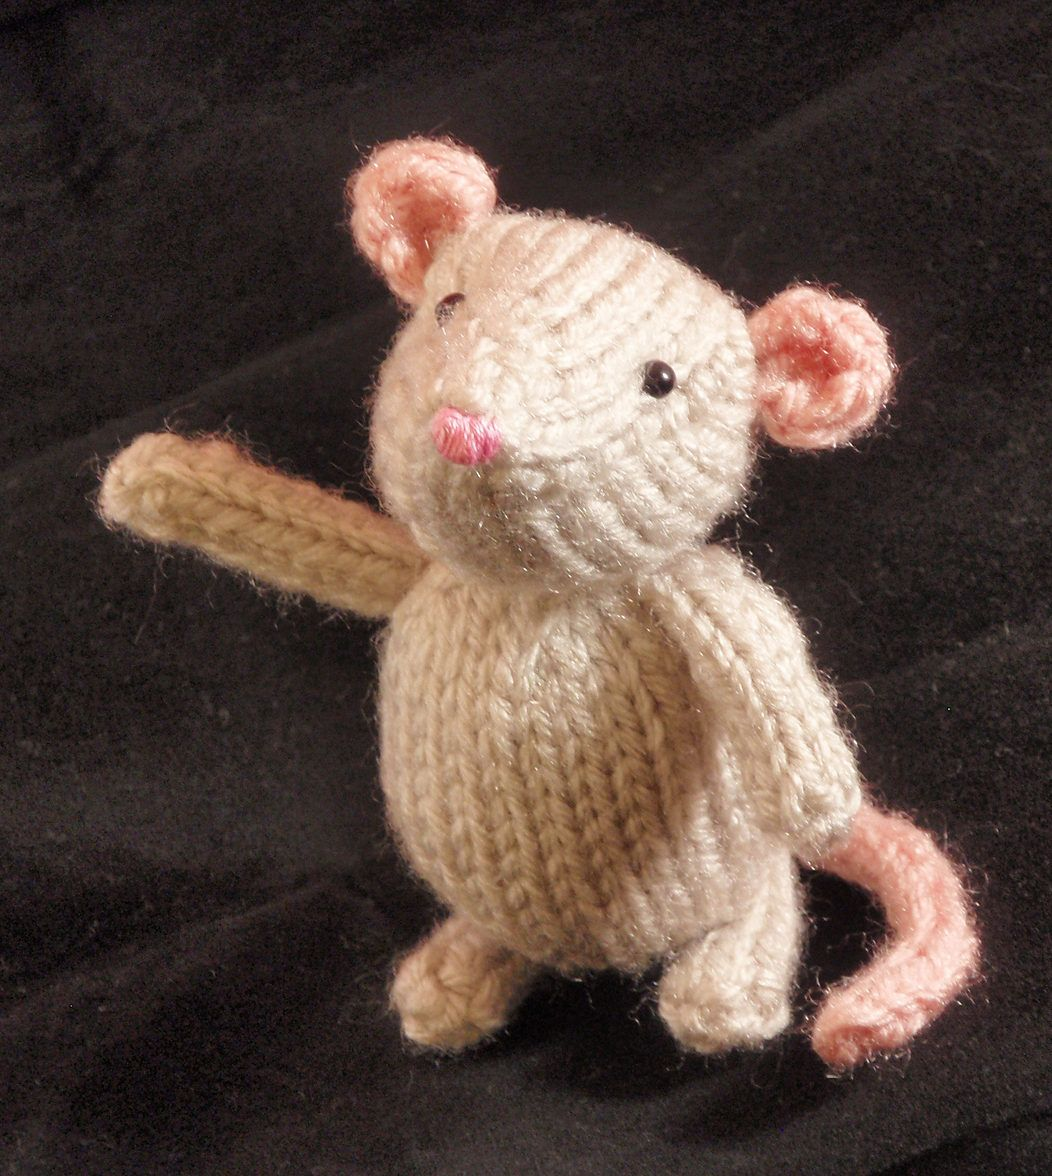 Free Knitting Pattern for Marisol Mouse - This teacup sized amigurumi mouse toy was designed by ...